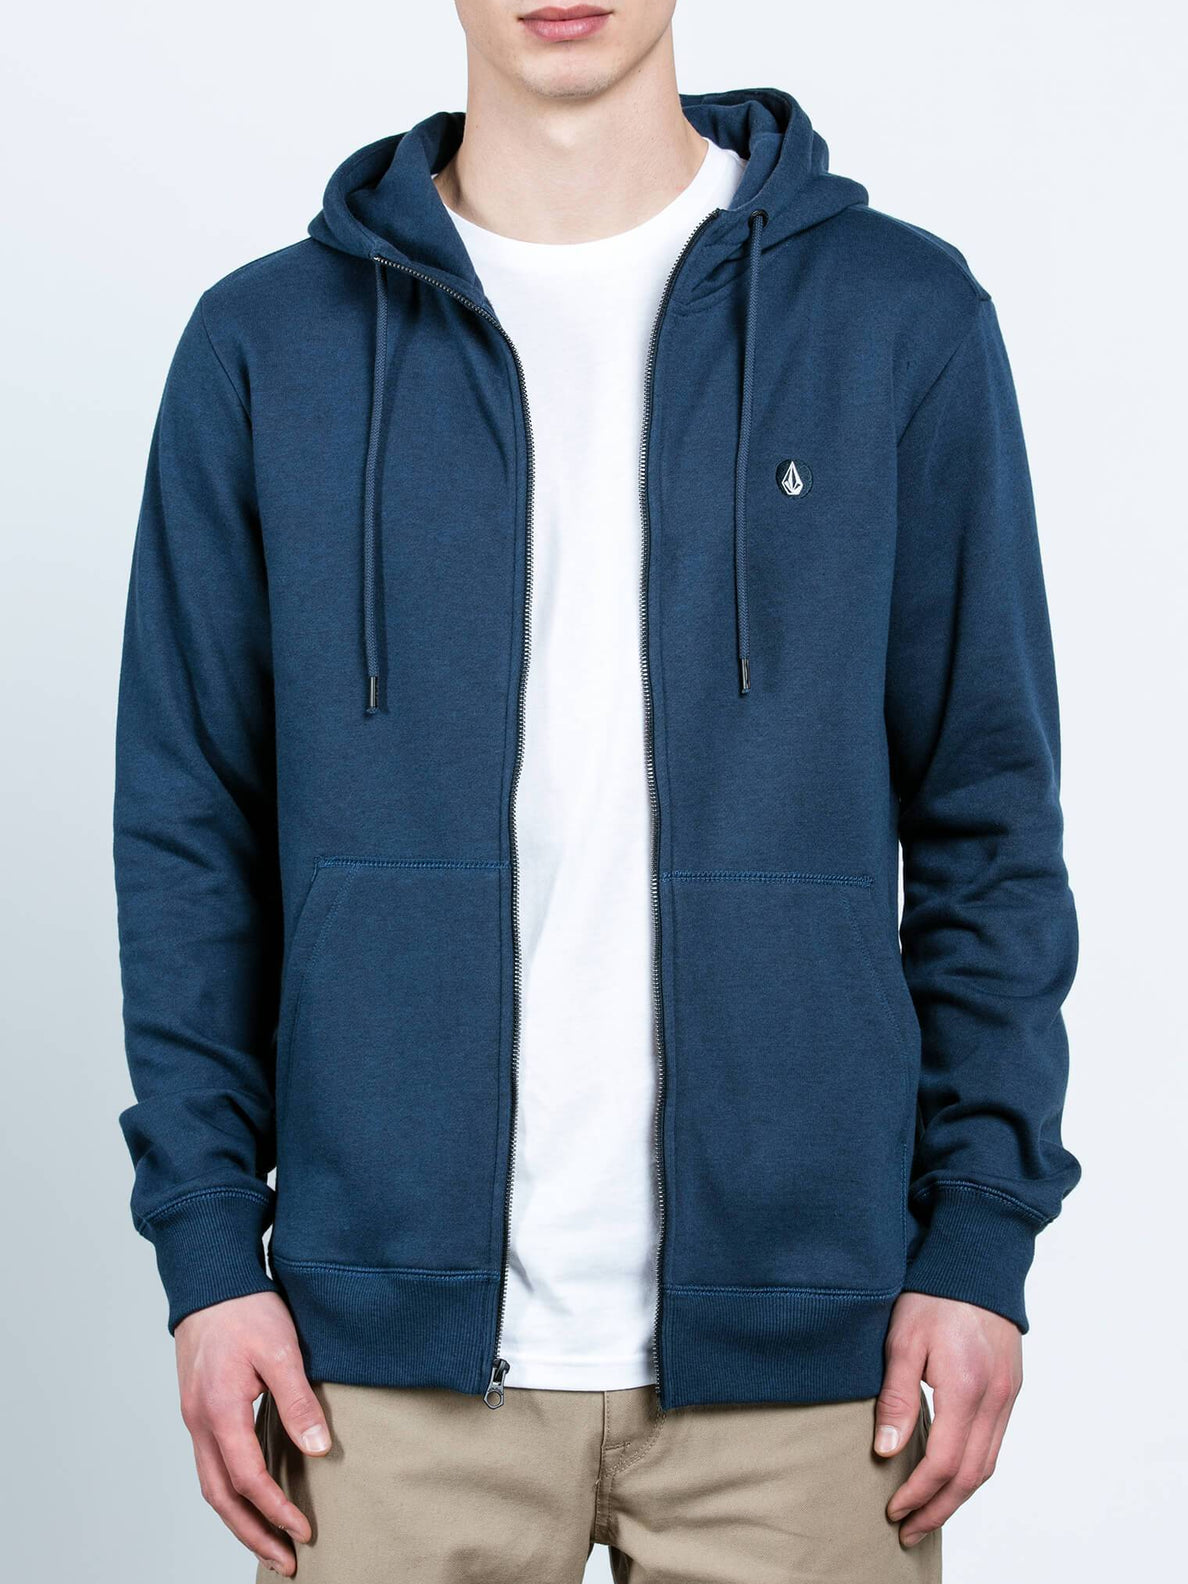 Sngl Stn Zip - Blue Black